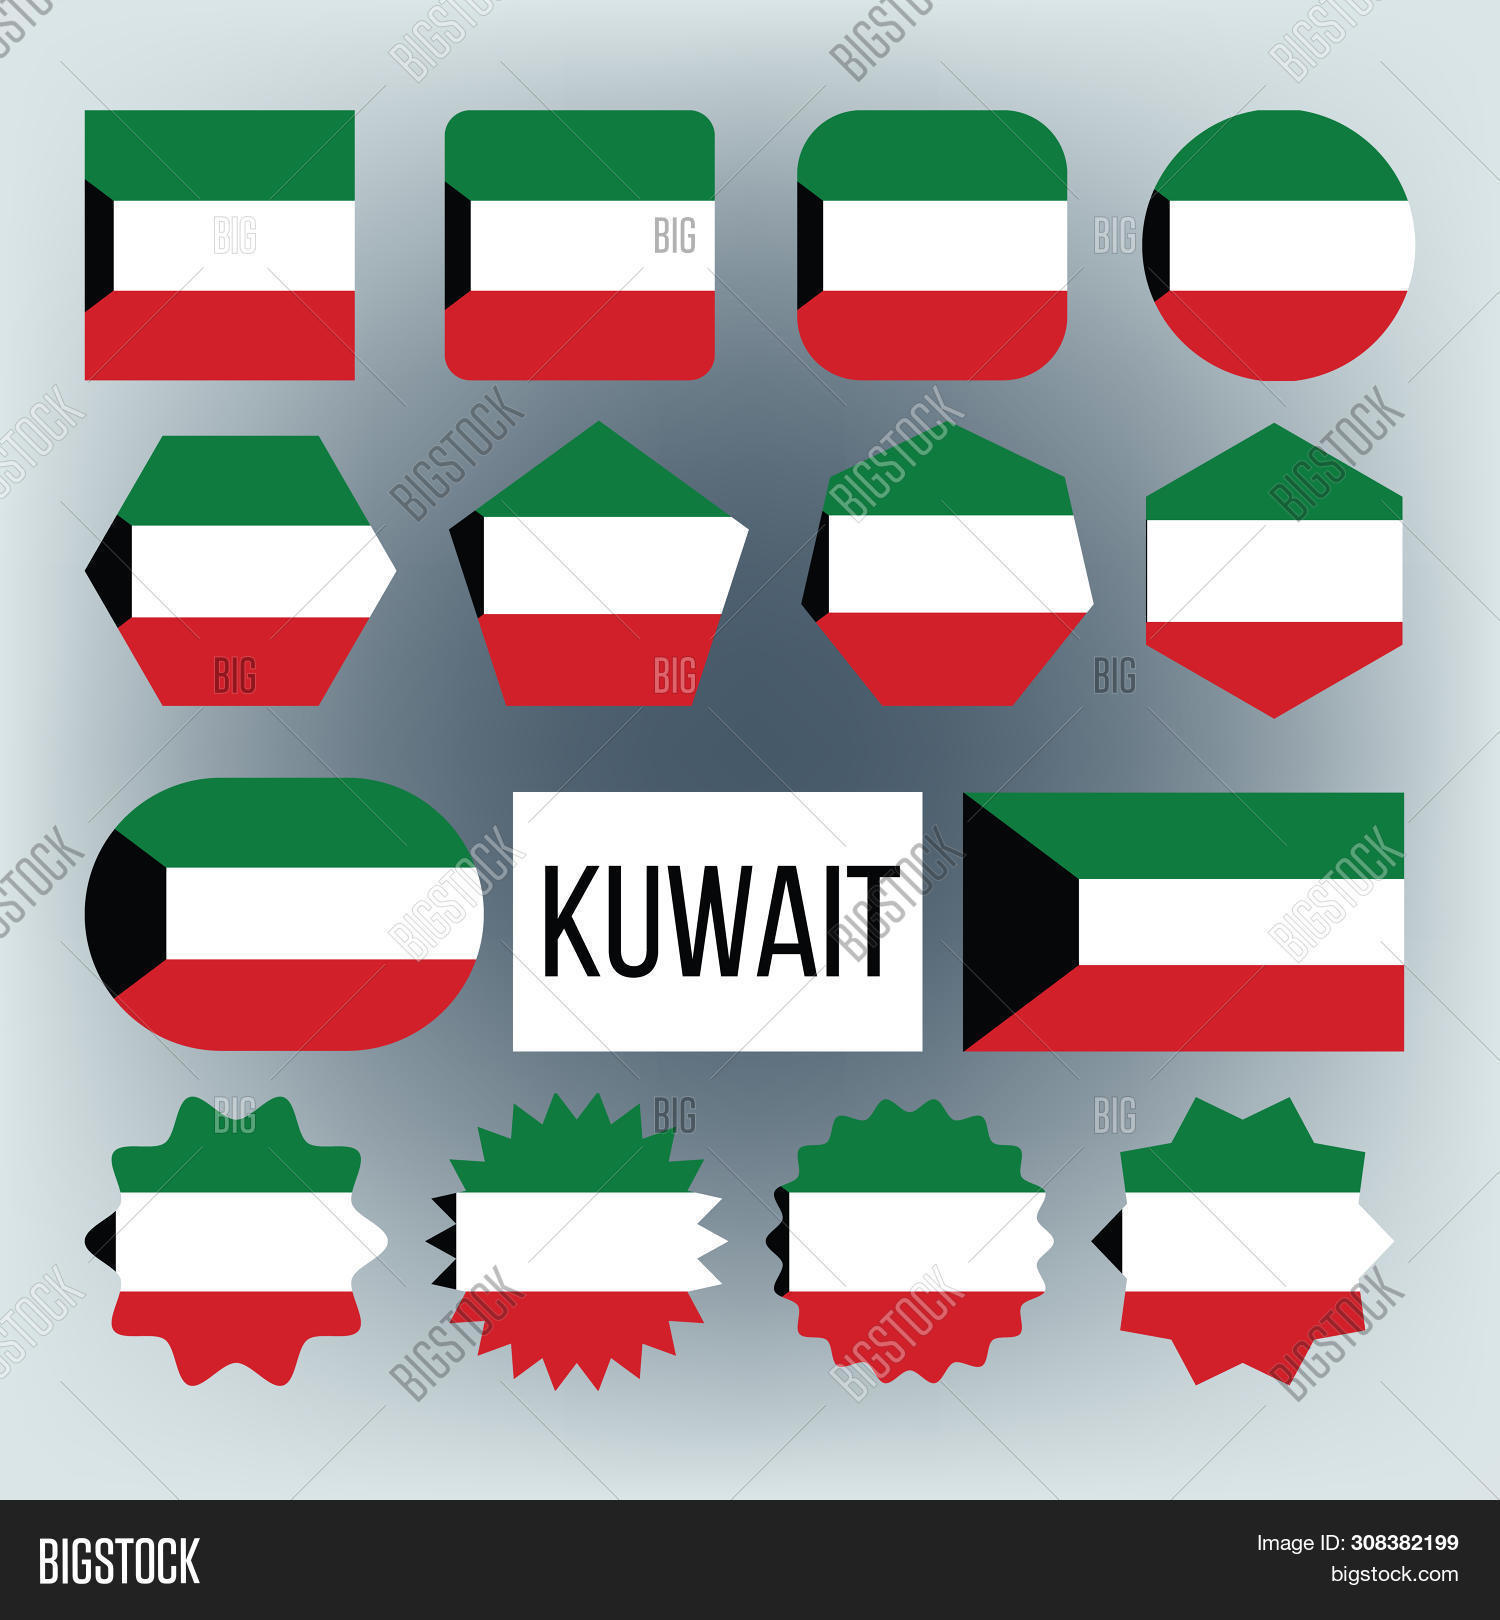 Kuwait Flag Collection Image Photo Free Trial Bigstock